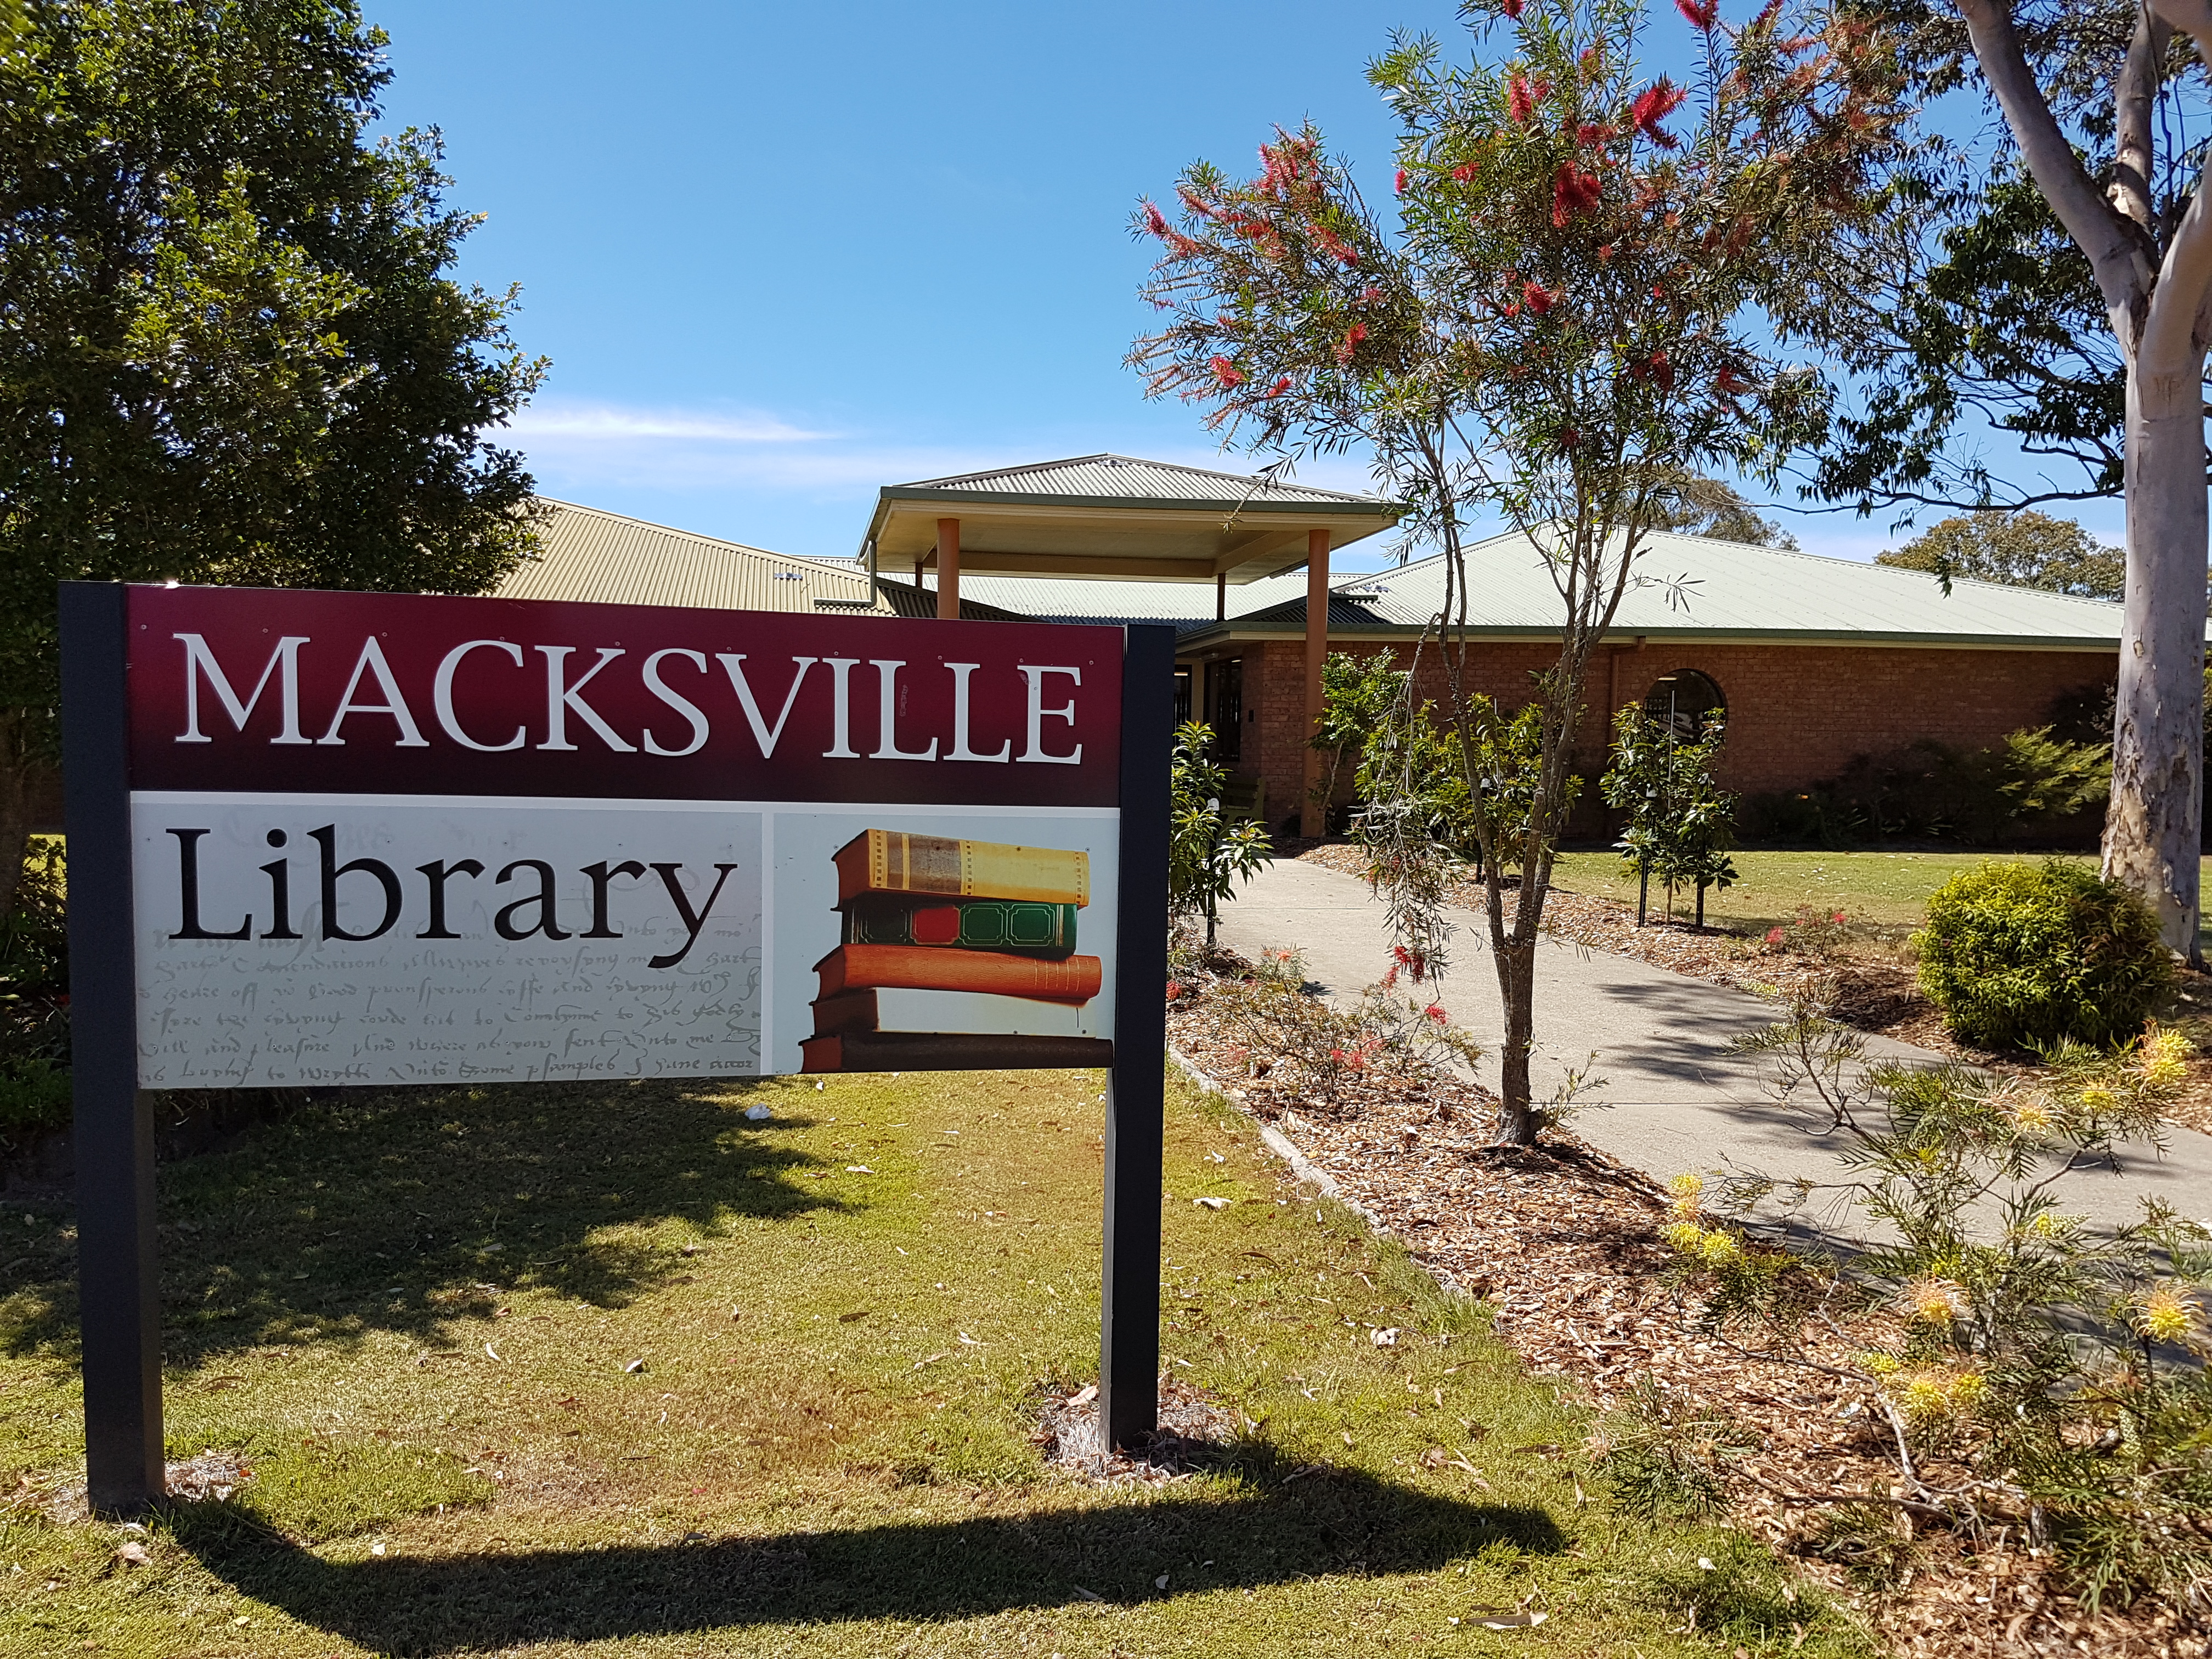 Showing the outside of Macksville Library